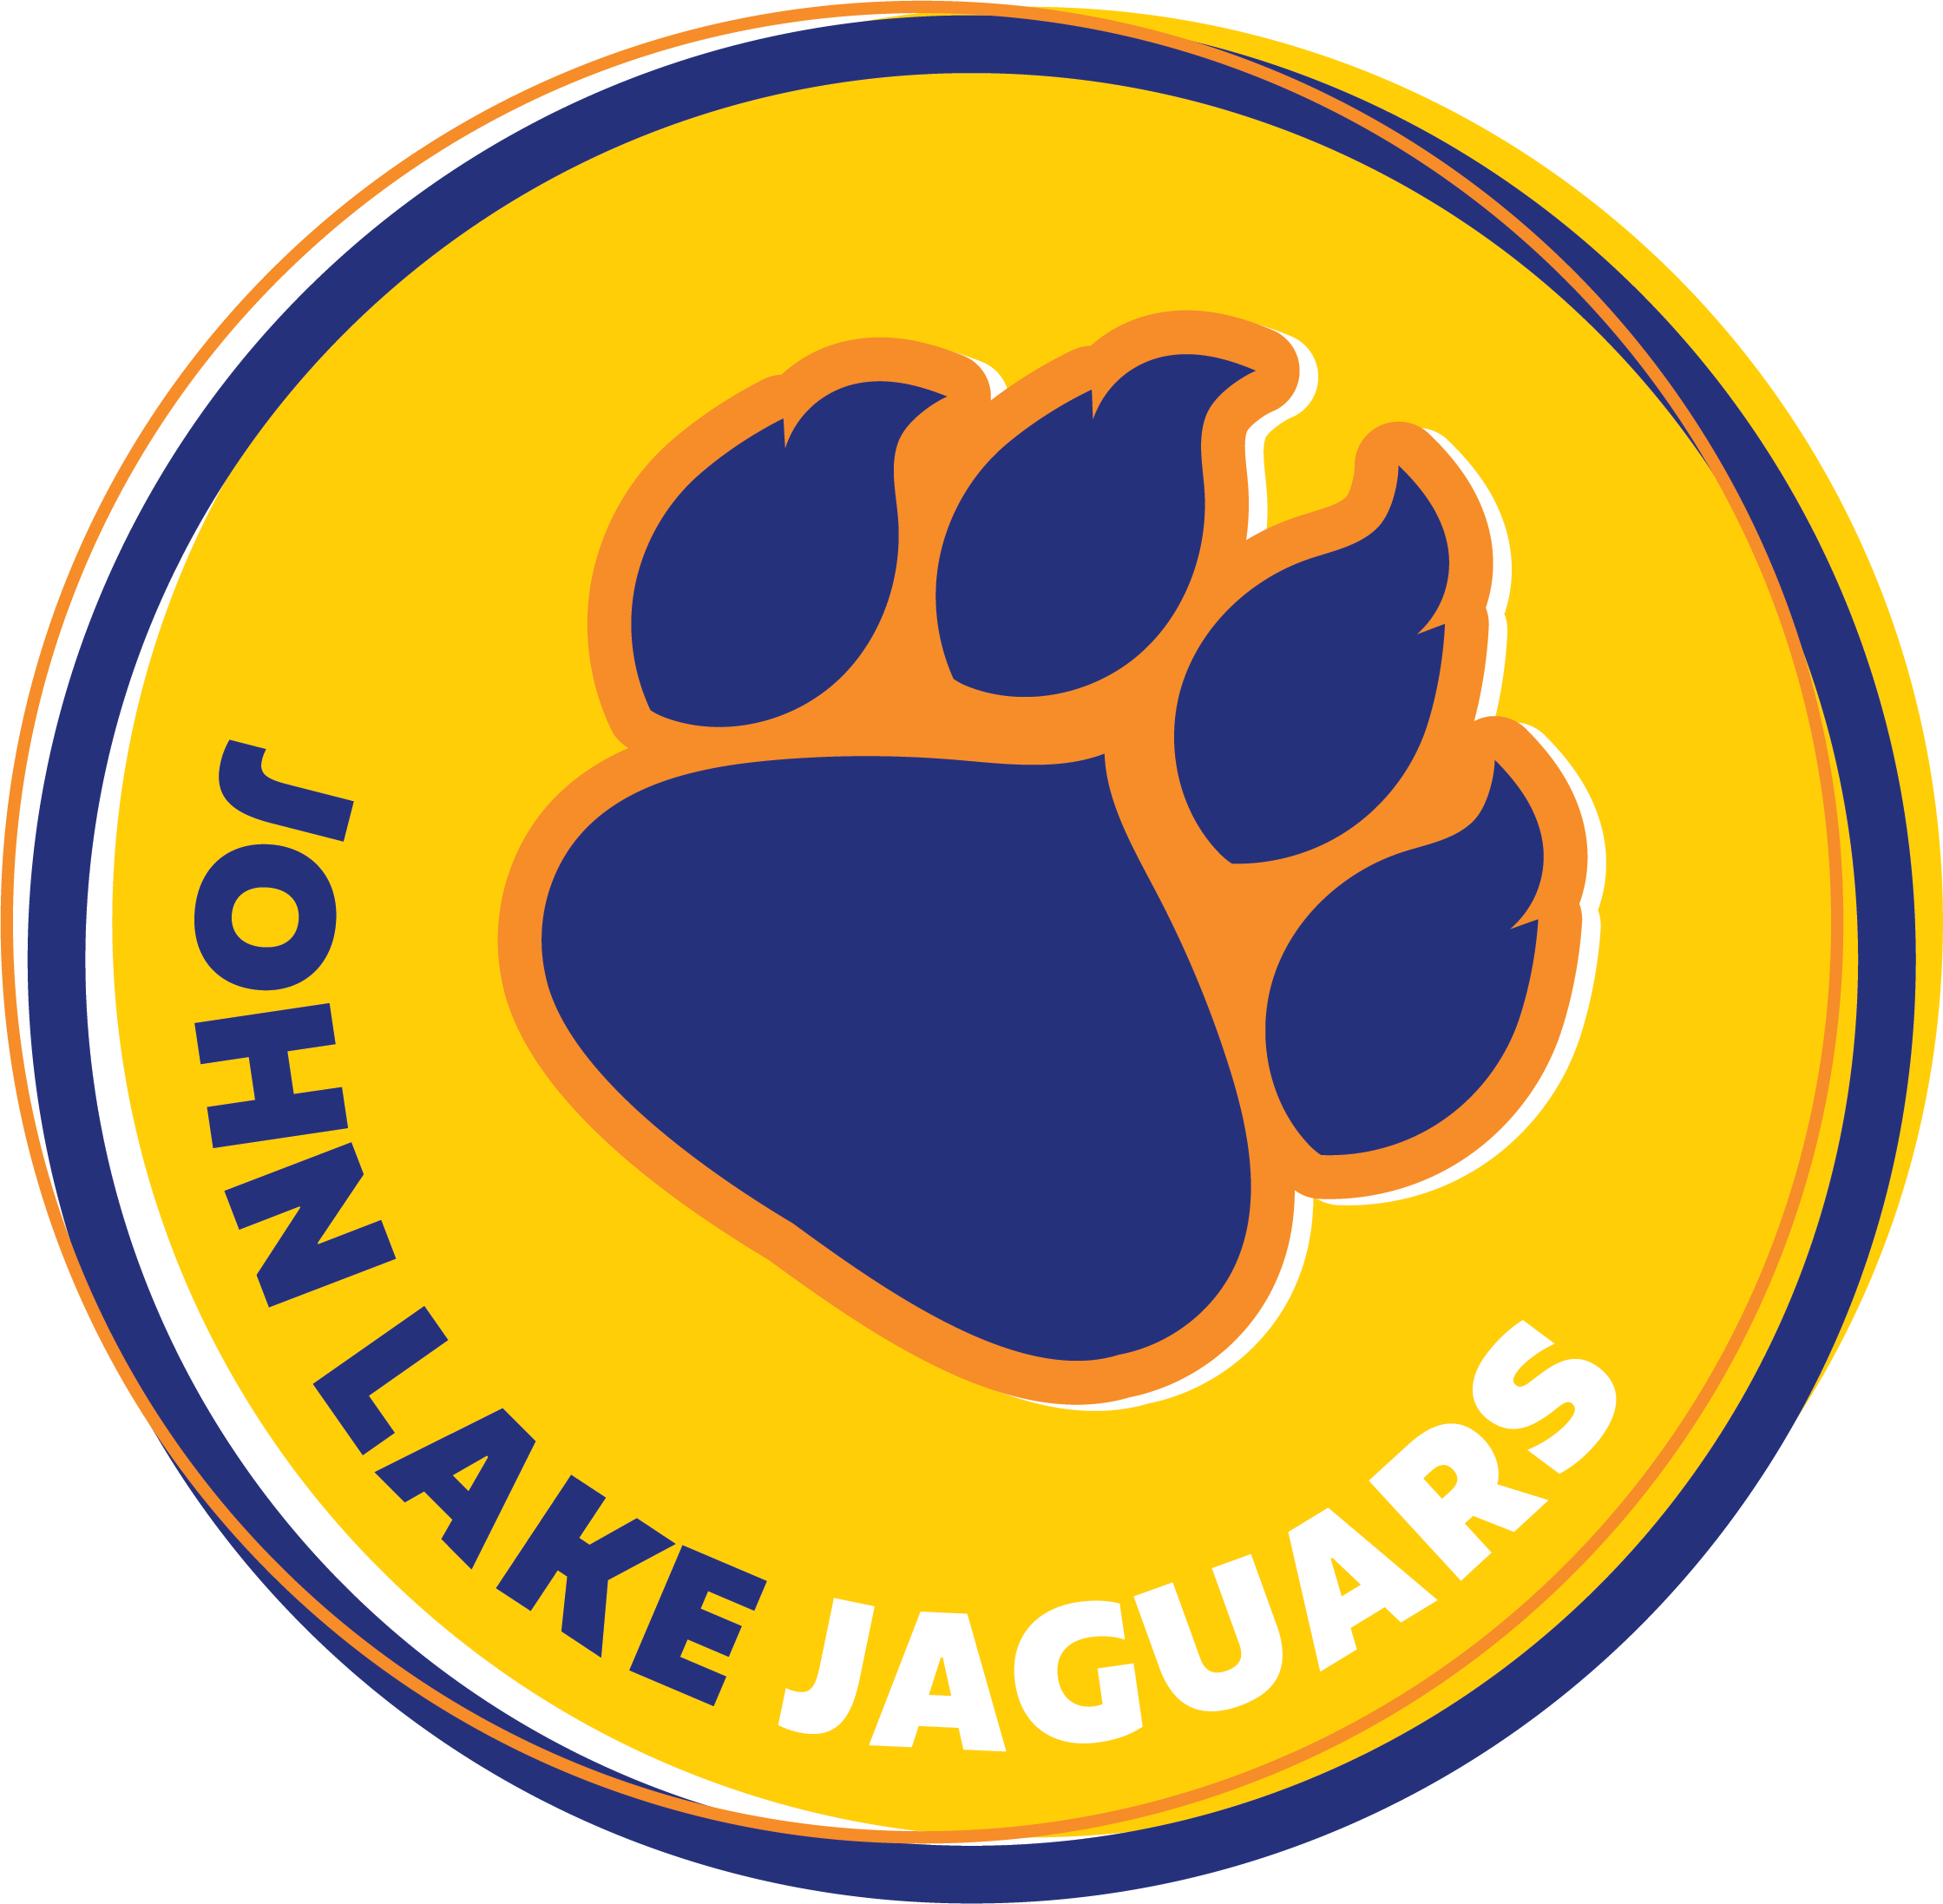 John Lake School logo